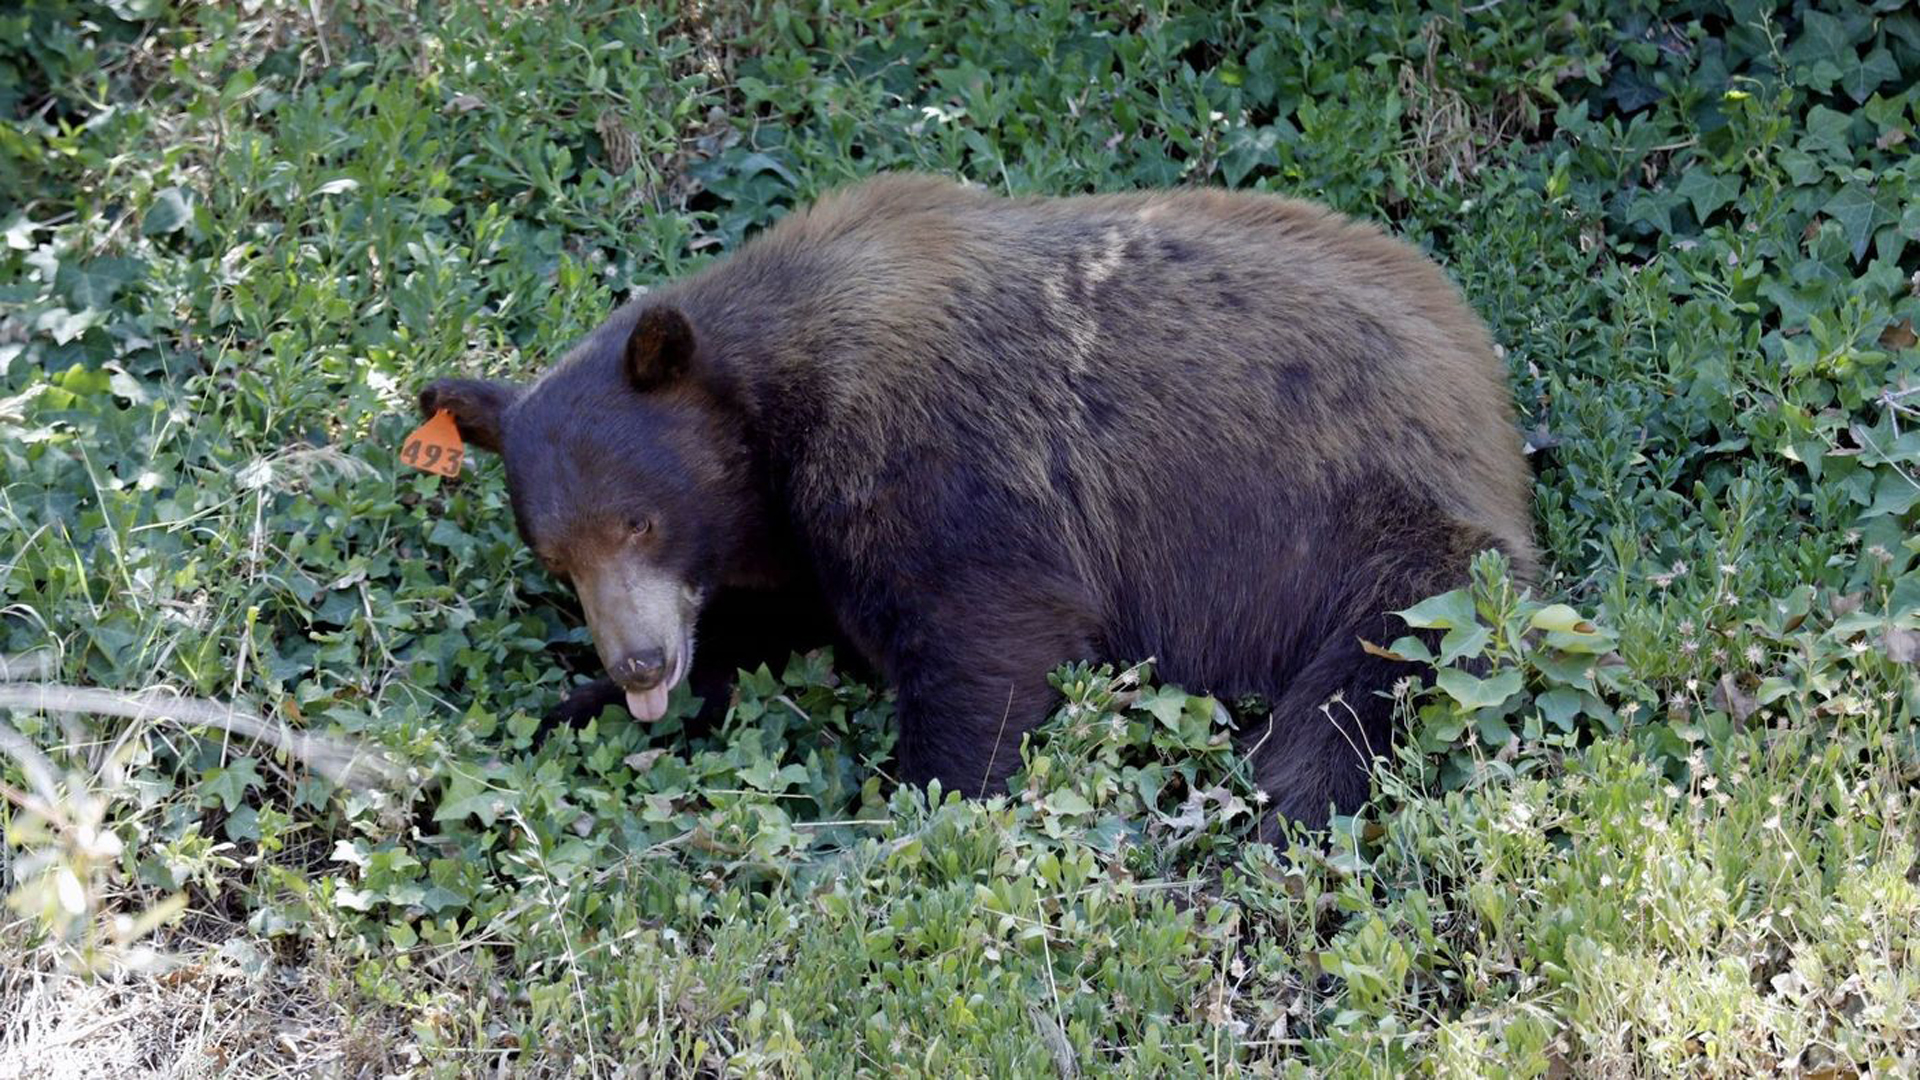 A man is being treated at a hospital after being mauled by a black bear that he wounded while hunting in Riverside County. The bear - not pictured - died. This July file photo shows a black bear that was tranquilized and captured by the Department of Fish and Wildlife at Bee Canyon Park in Granada Hills. (Credit: Gary Coronado / Los Angeles Times)